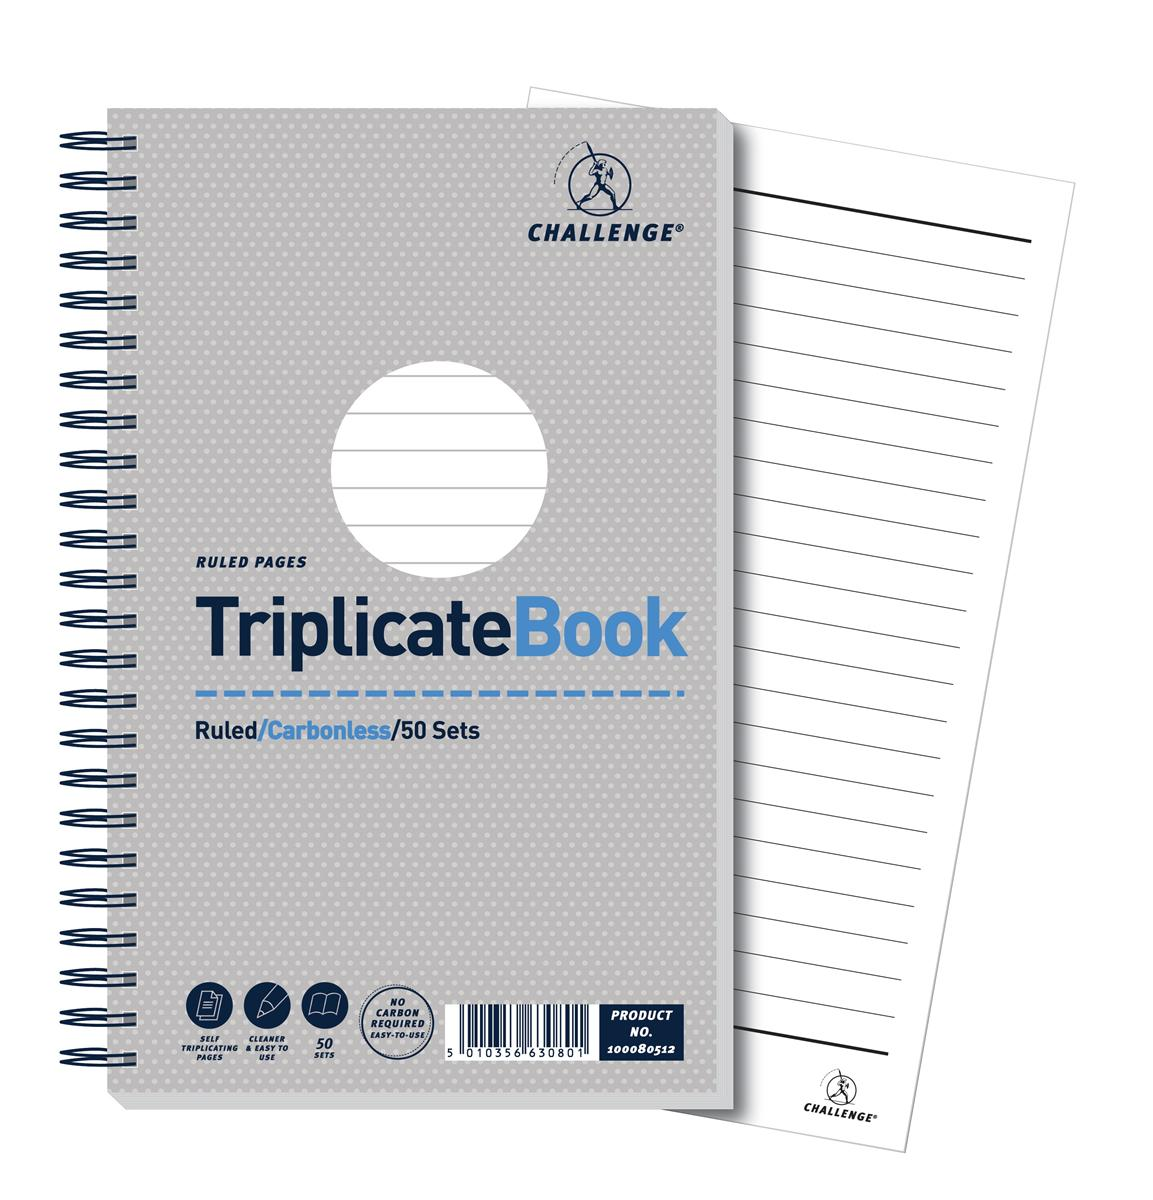 Image for Challenge Triplicate Book Carbonless Wirebound Ruled 50 Sets 210x130mm Ref 100080512 [Pack 5]